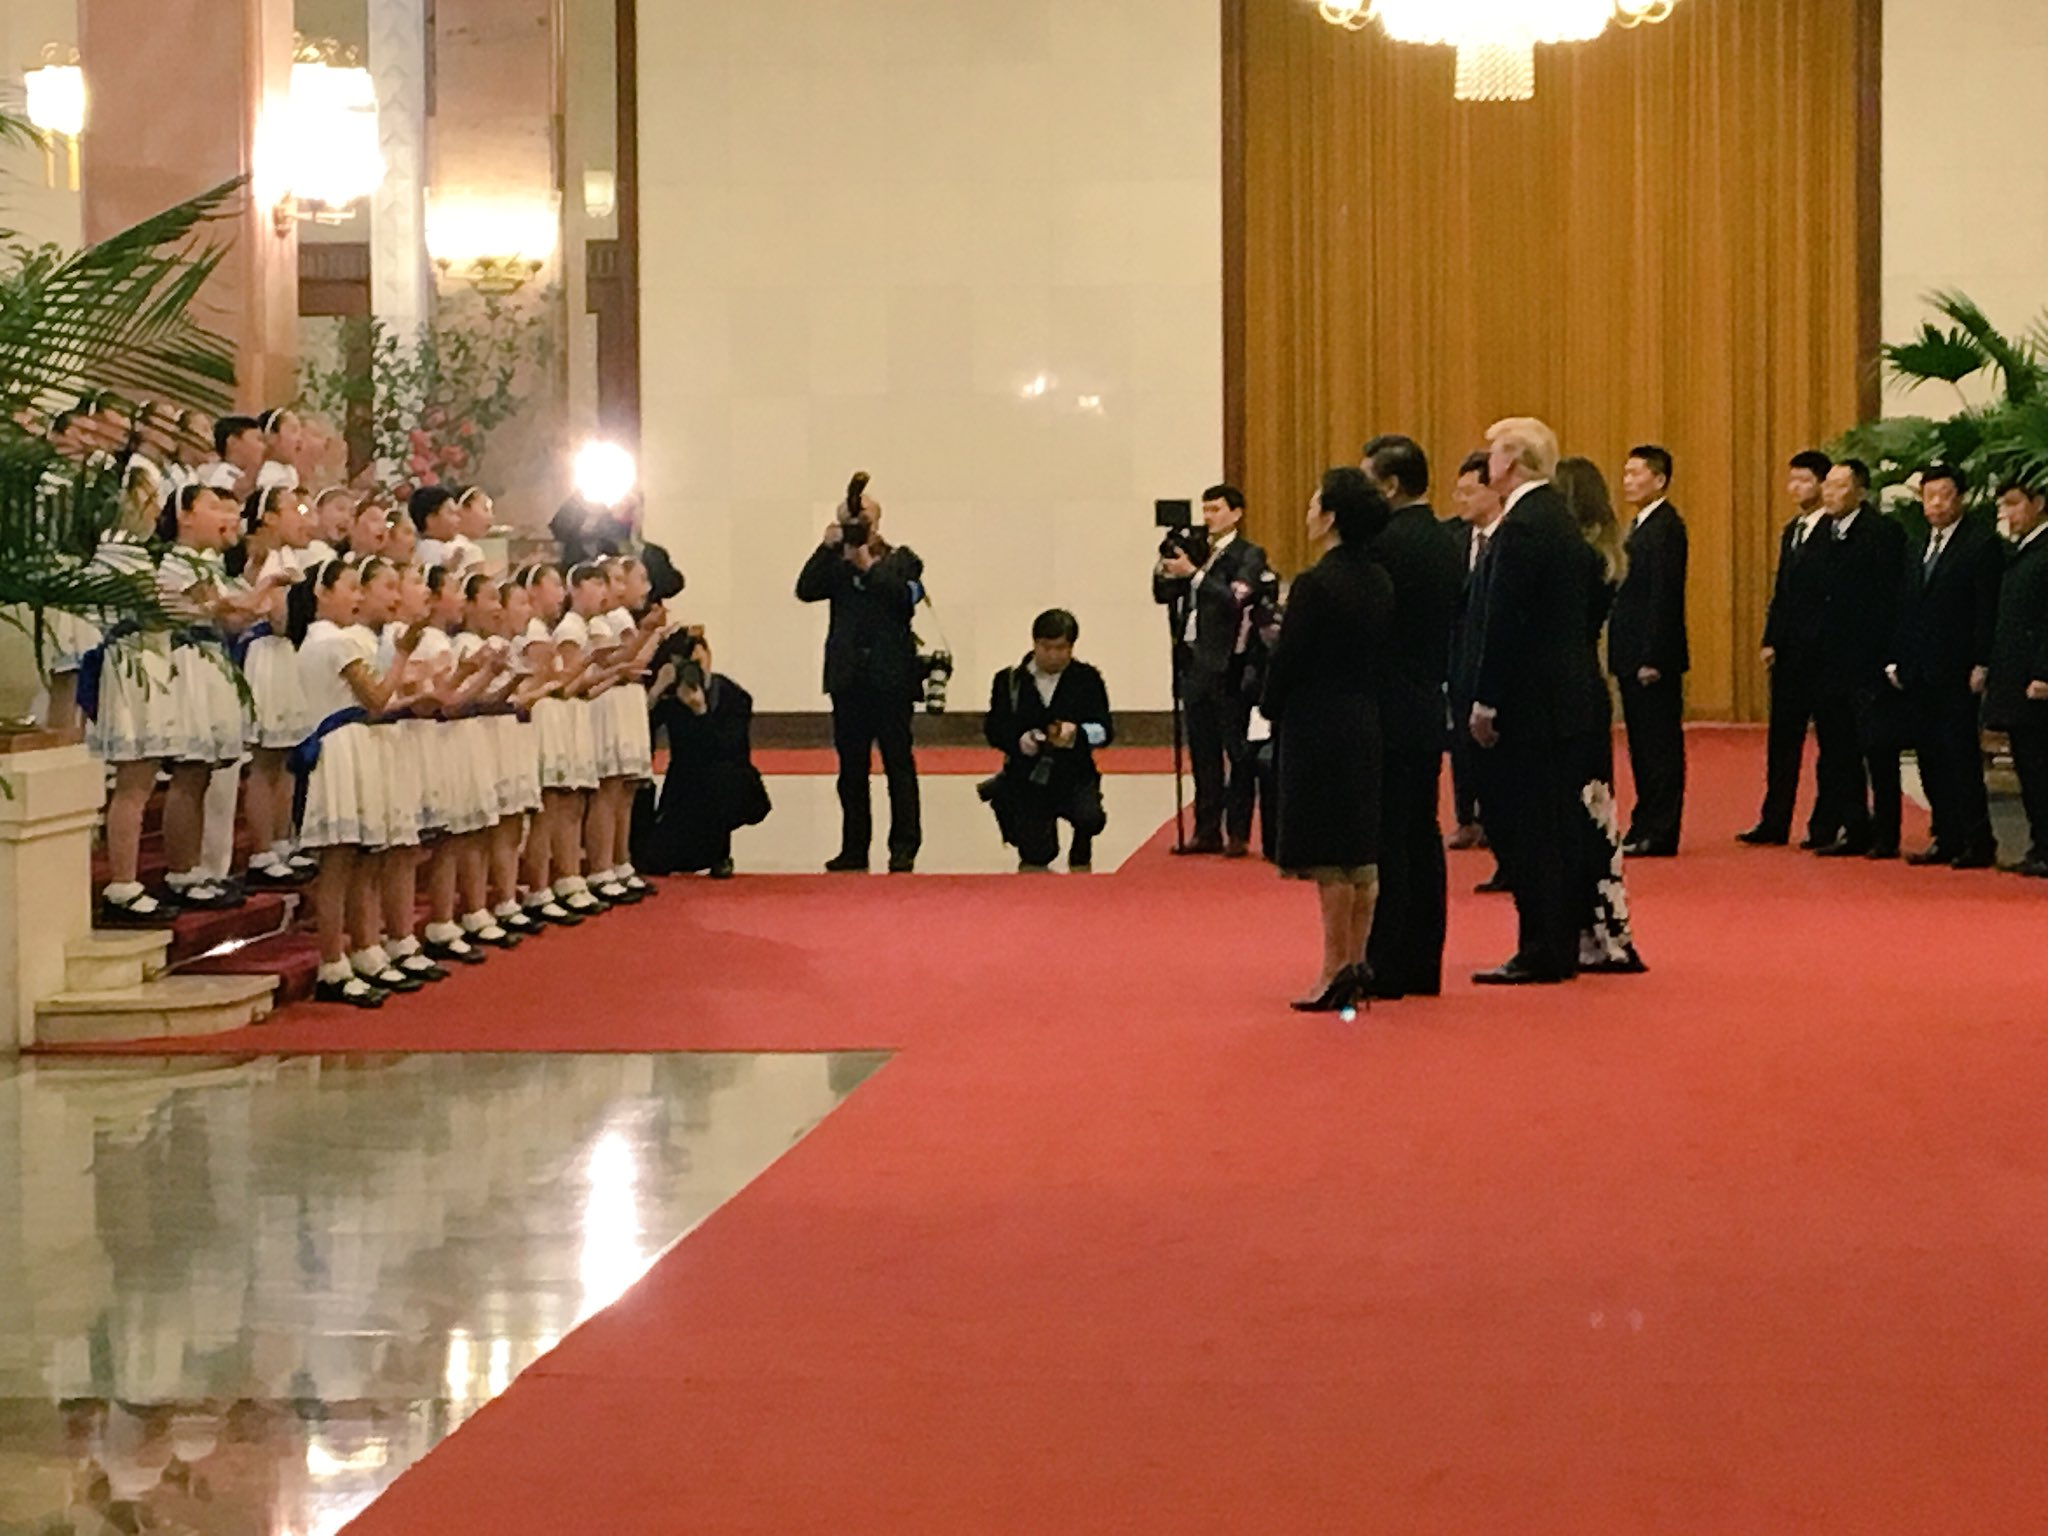 Chinese Children's choir sings to @POTUS and @FLOTUS upon arrival at the Great Hall. #POTUSinAsia https://t.co/7yiXsumQ99